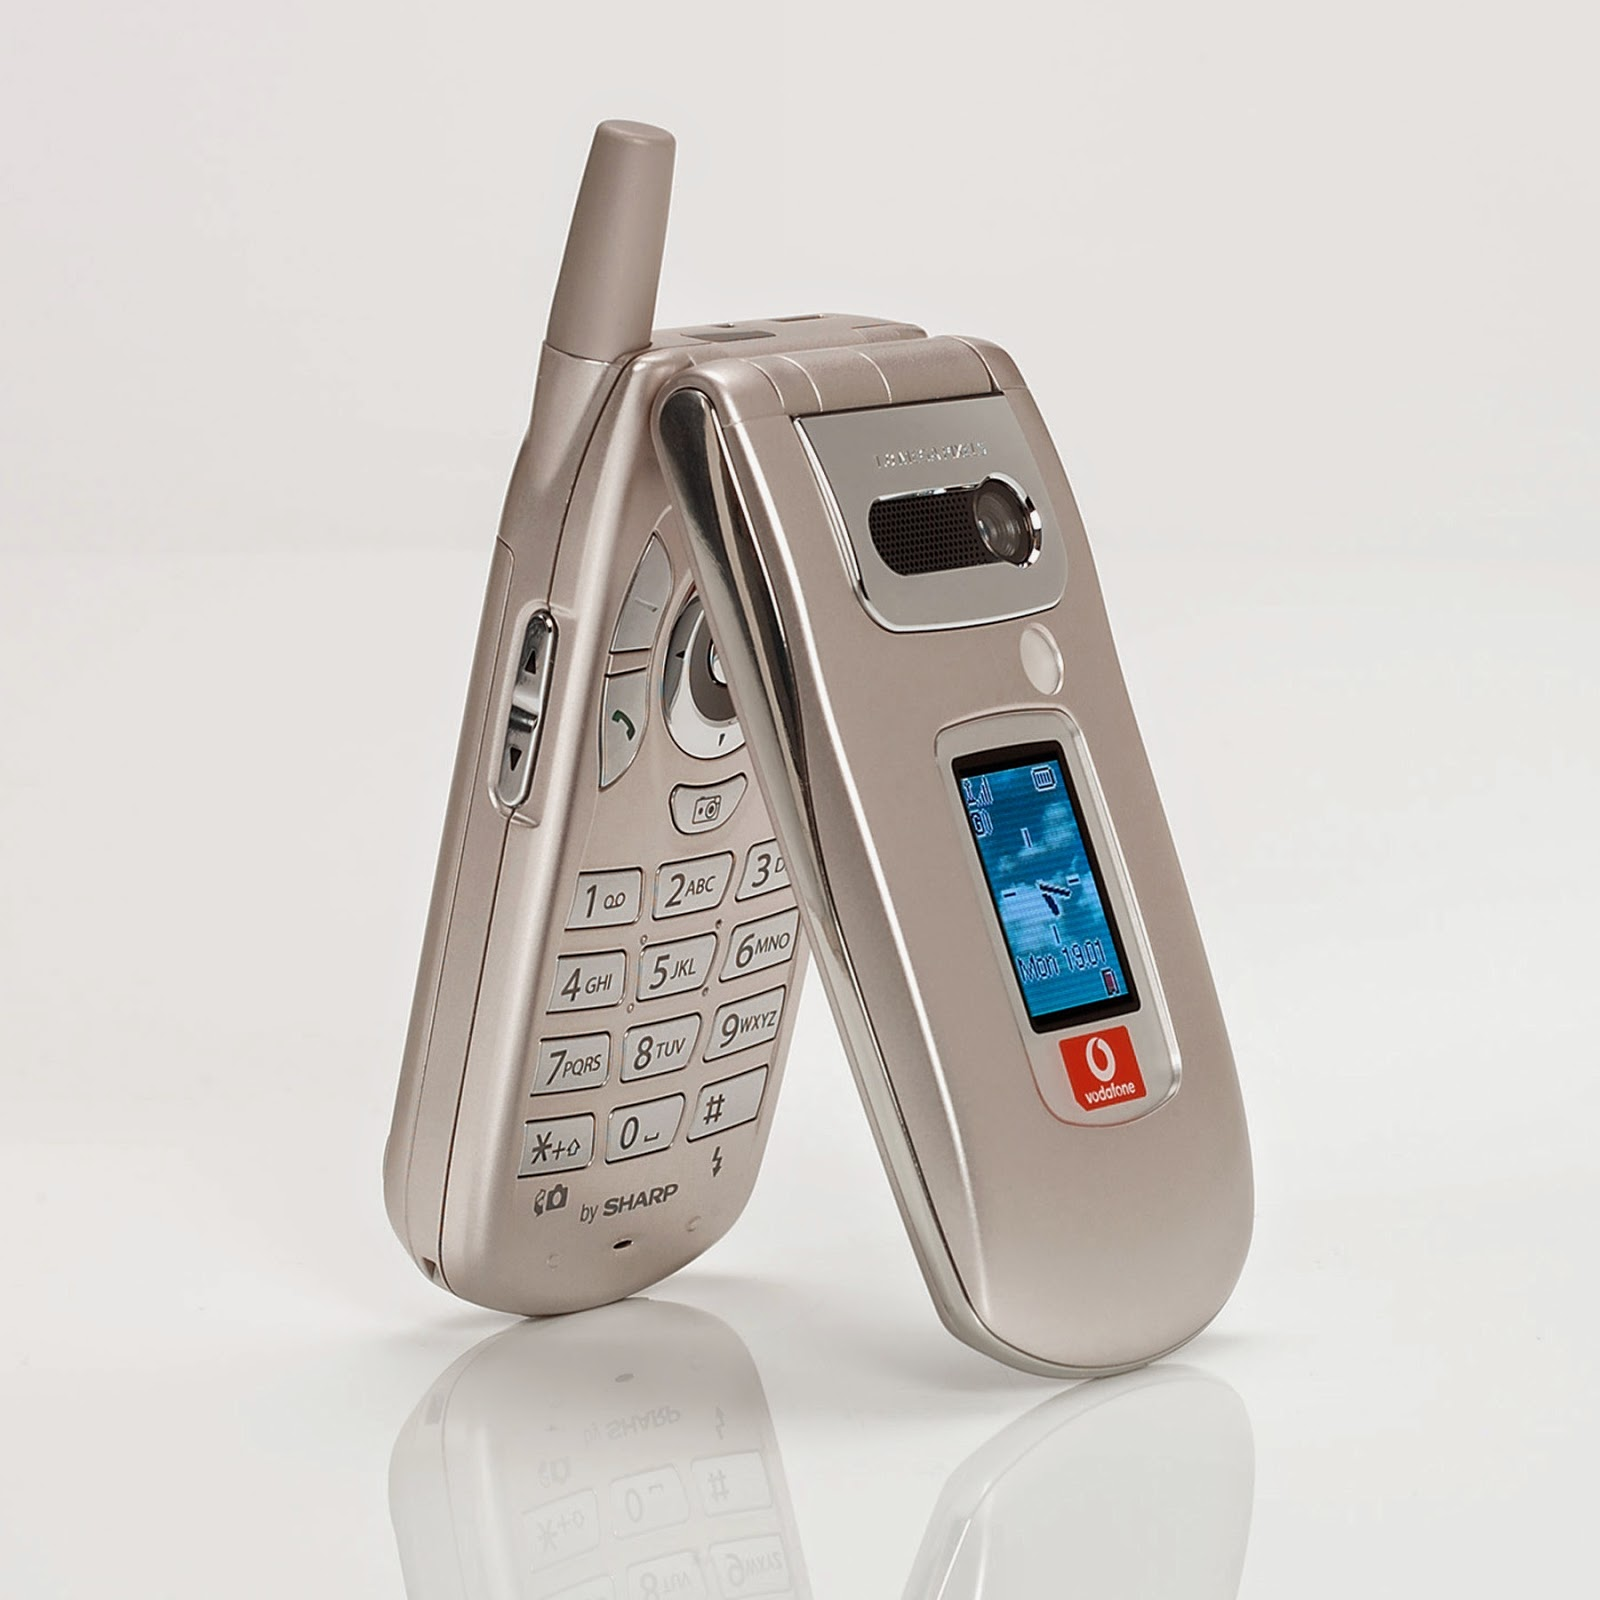 Sharp GX30 Mobile Cell Phone